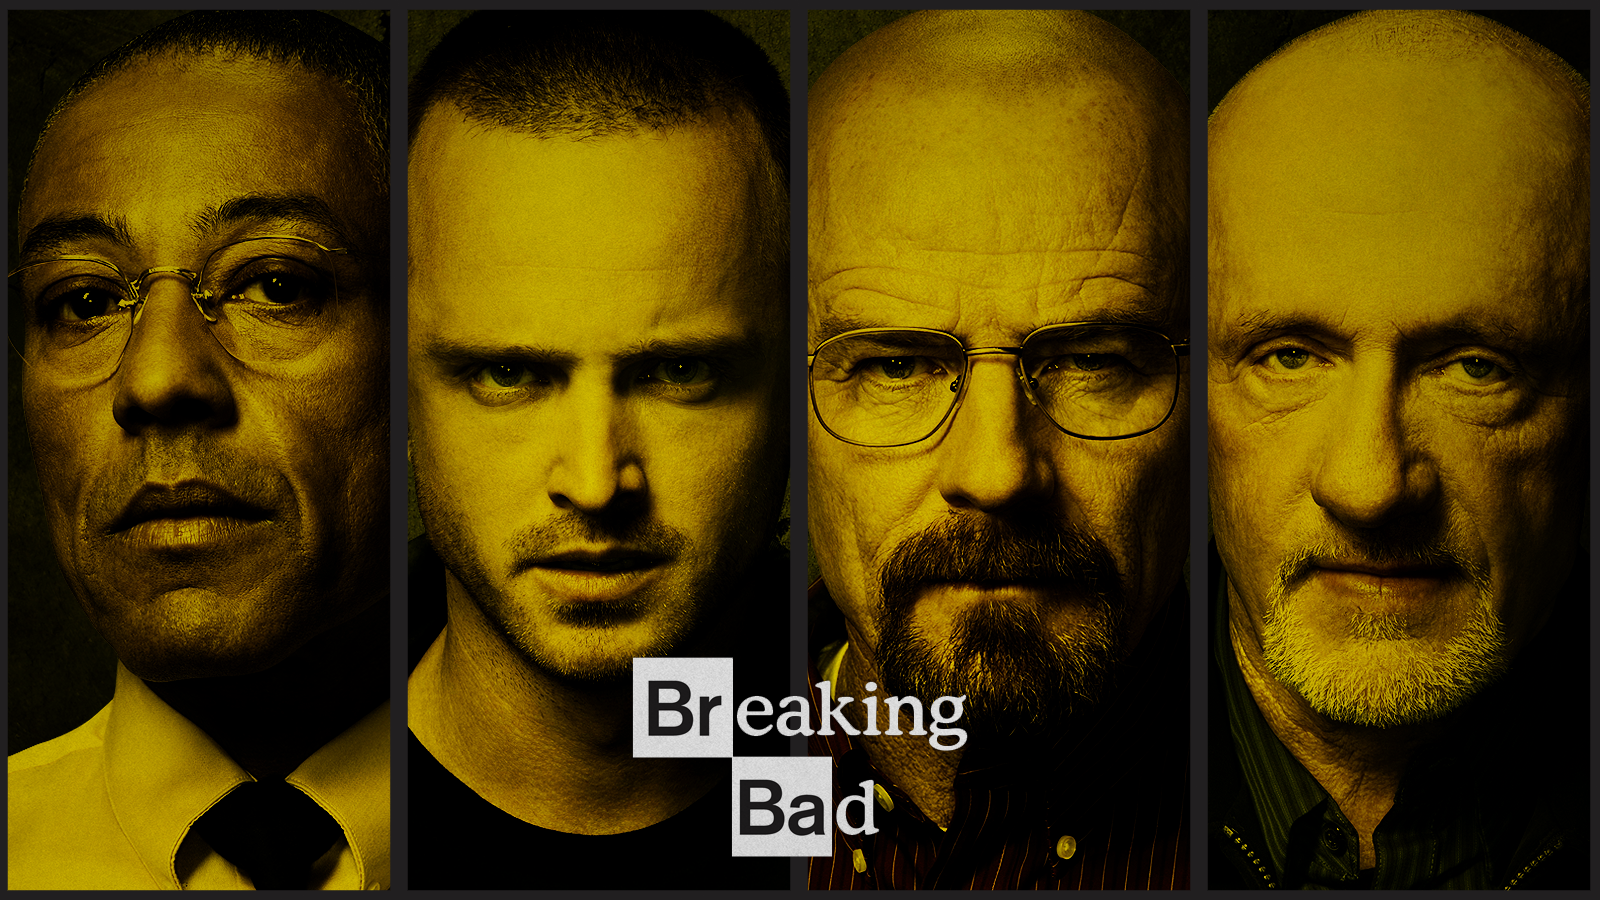 Breaking Bad becomes seriously addictive!